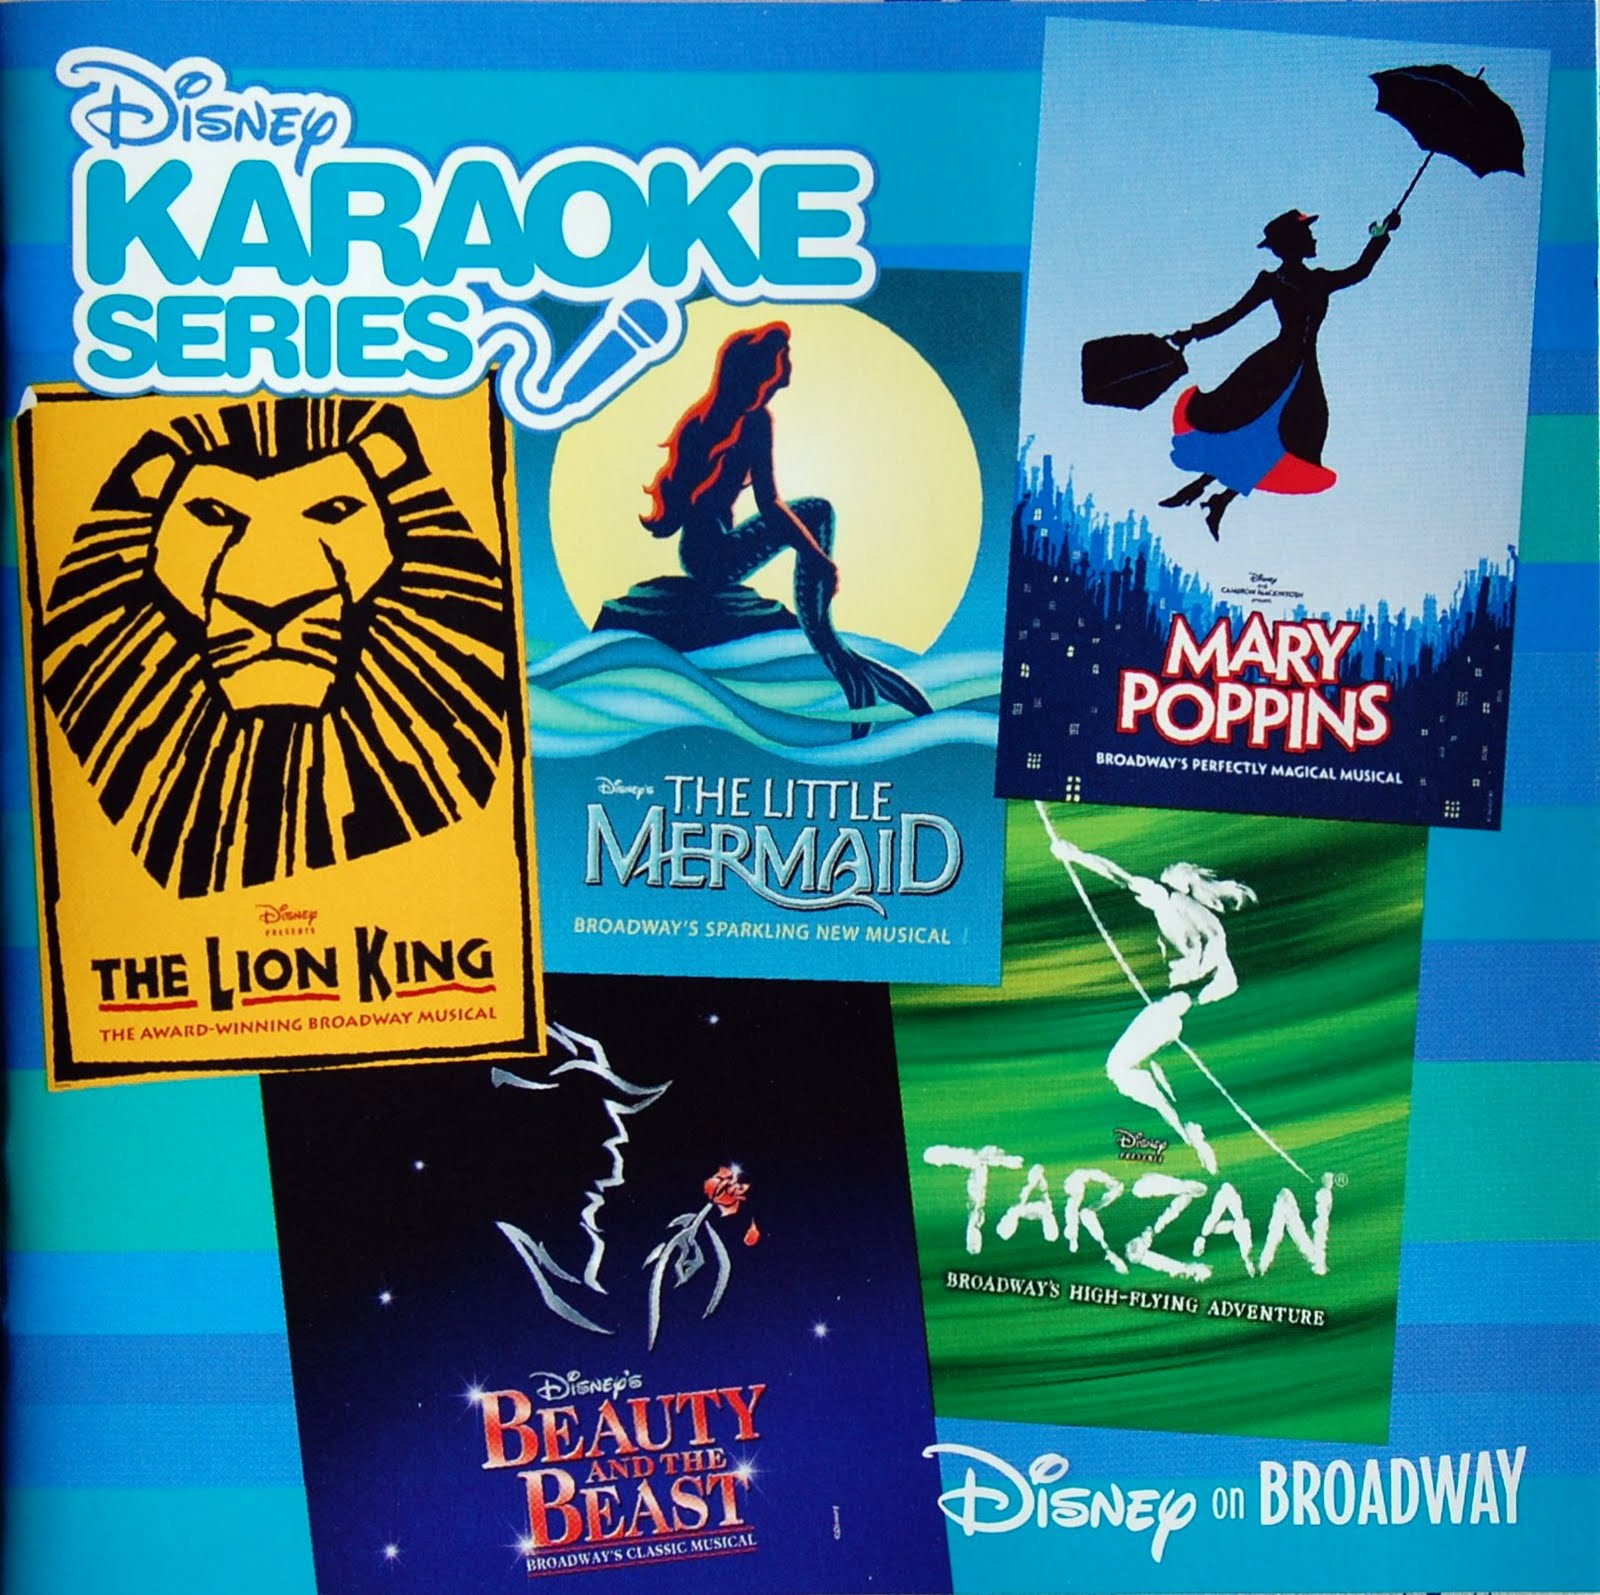 This Broadway-style Musical Theatre Dance class is going Disney! In this foundation course, students will learn how to speak the lingo, work within different rhythms and styles, develop dance technique, and train hard as a musical theater dancer. Musical Theater dance is a combination of acting and dance.